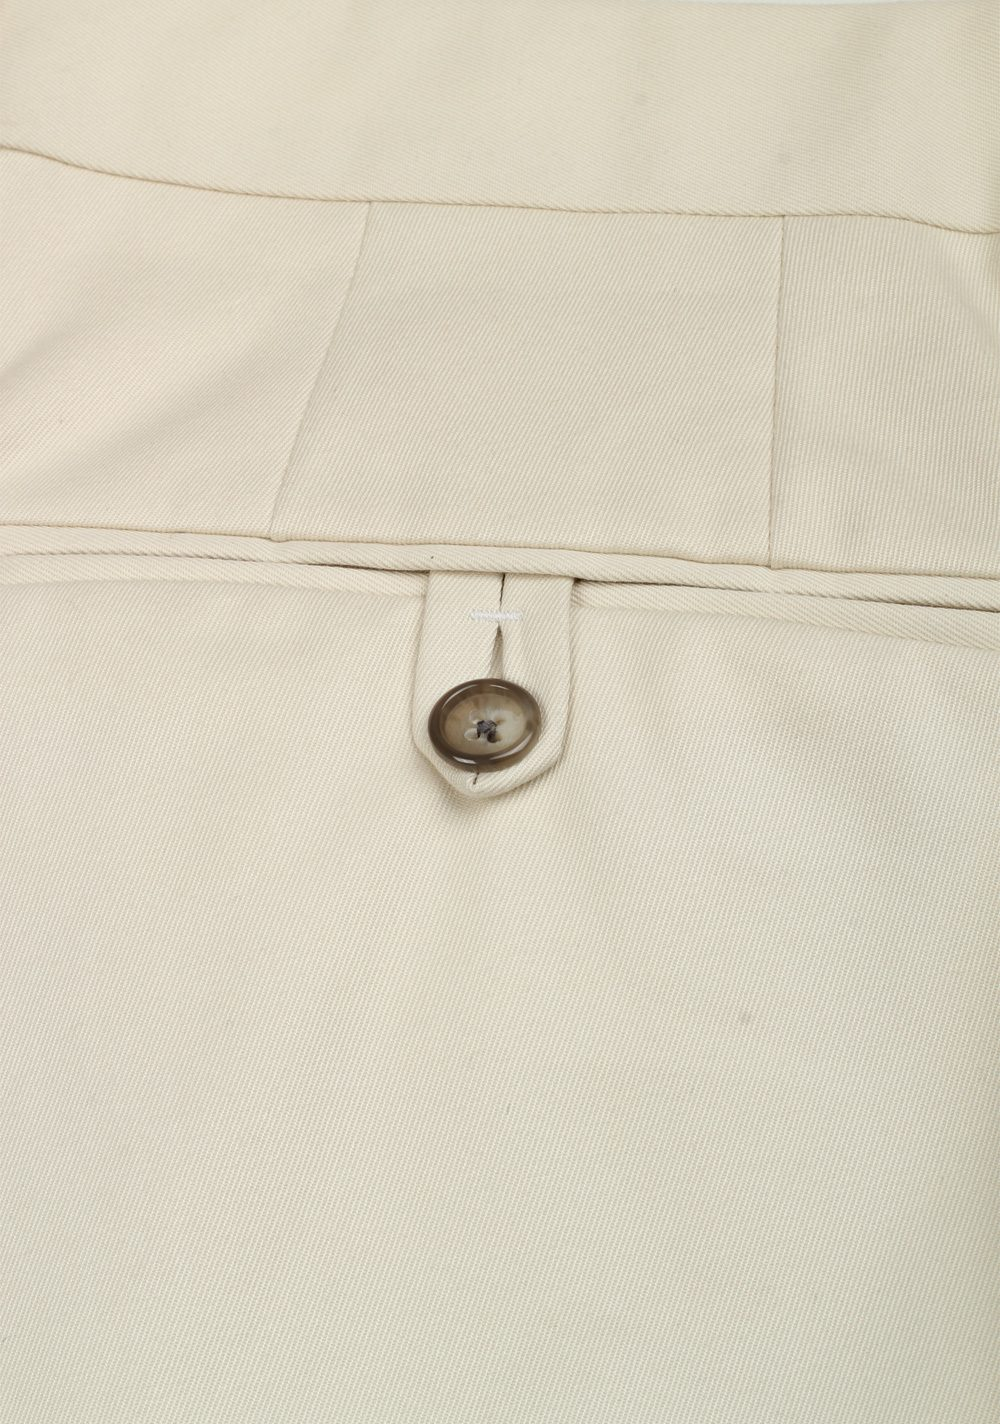 TOM FORD Beige Cotton Trousers Size 48 / 32 U.S. | Costume Limité